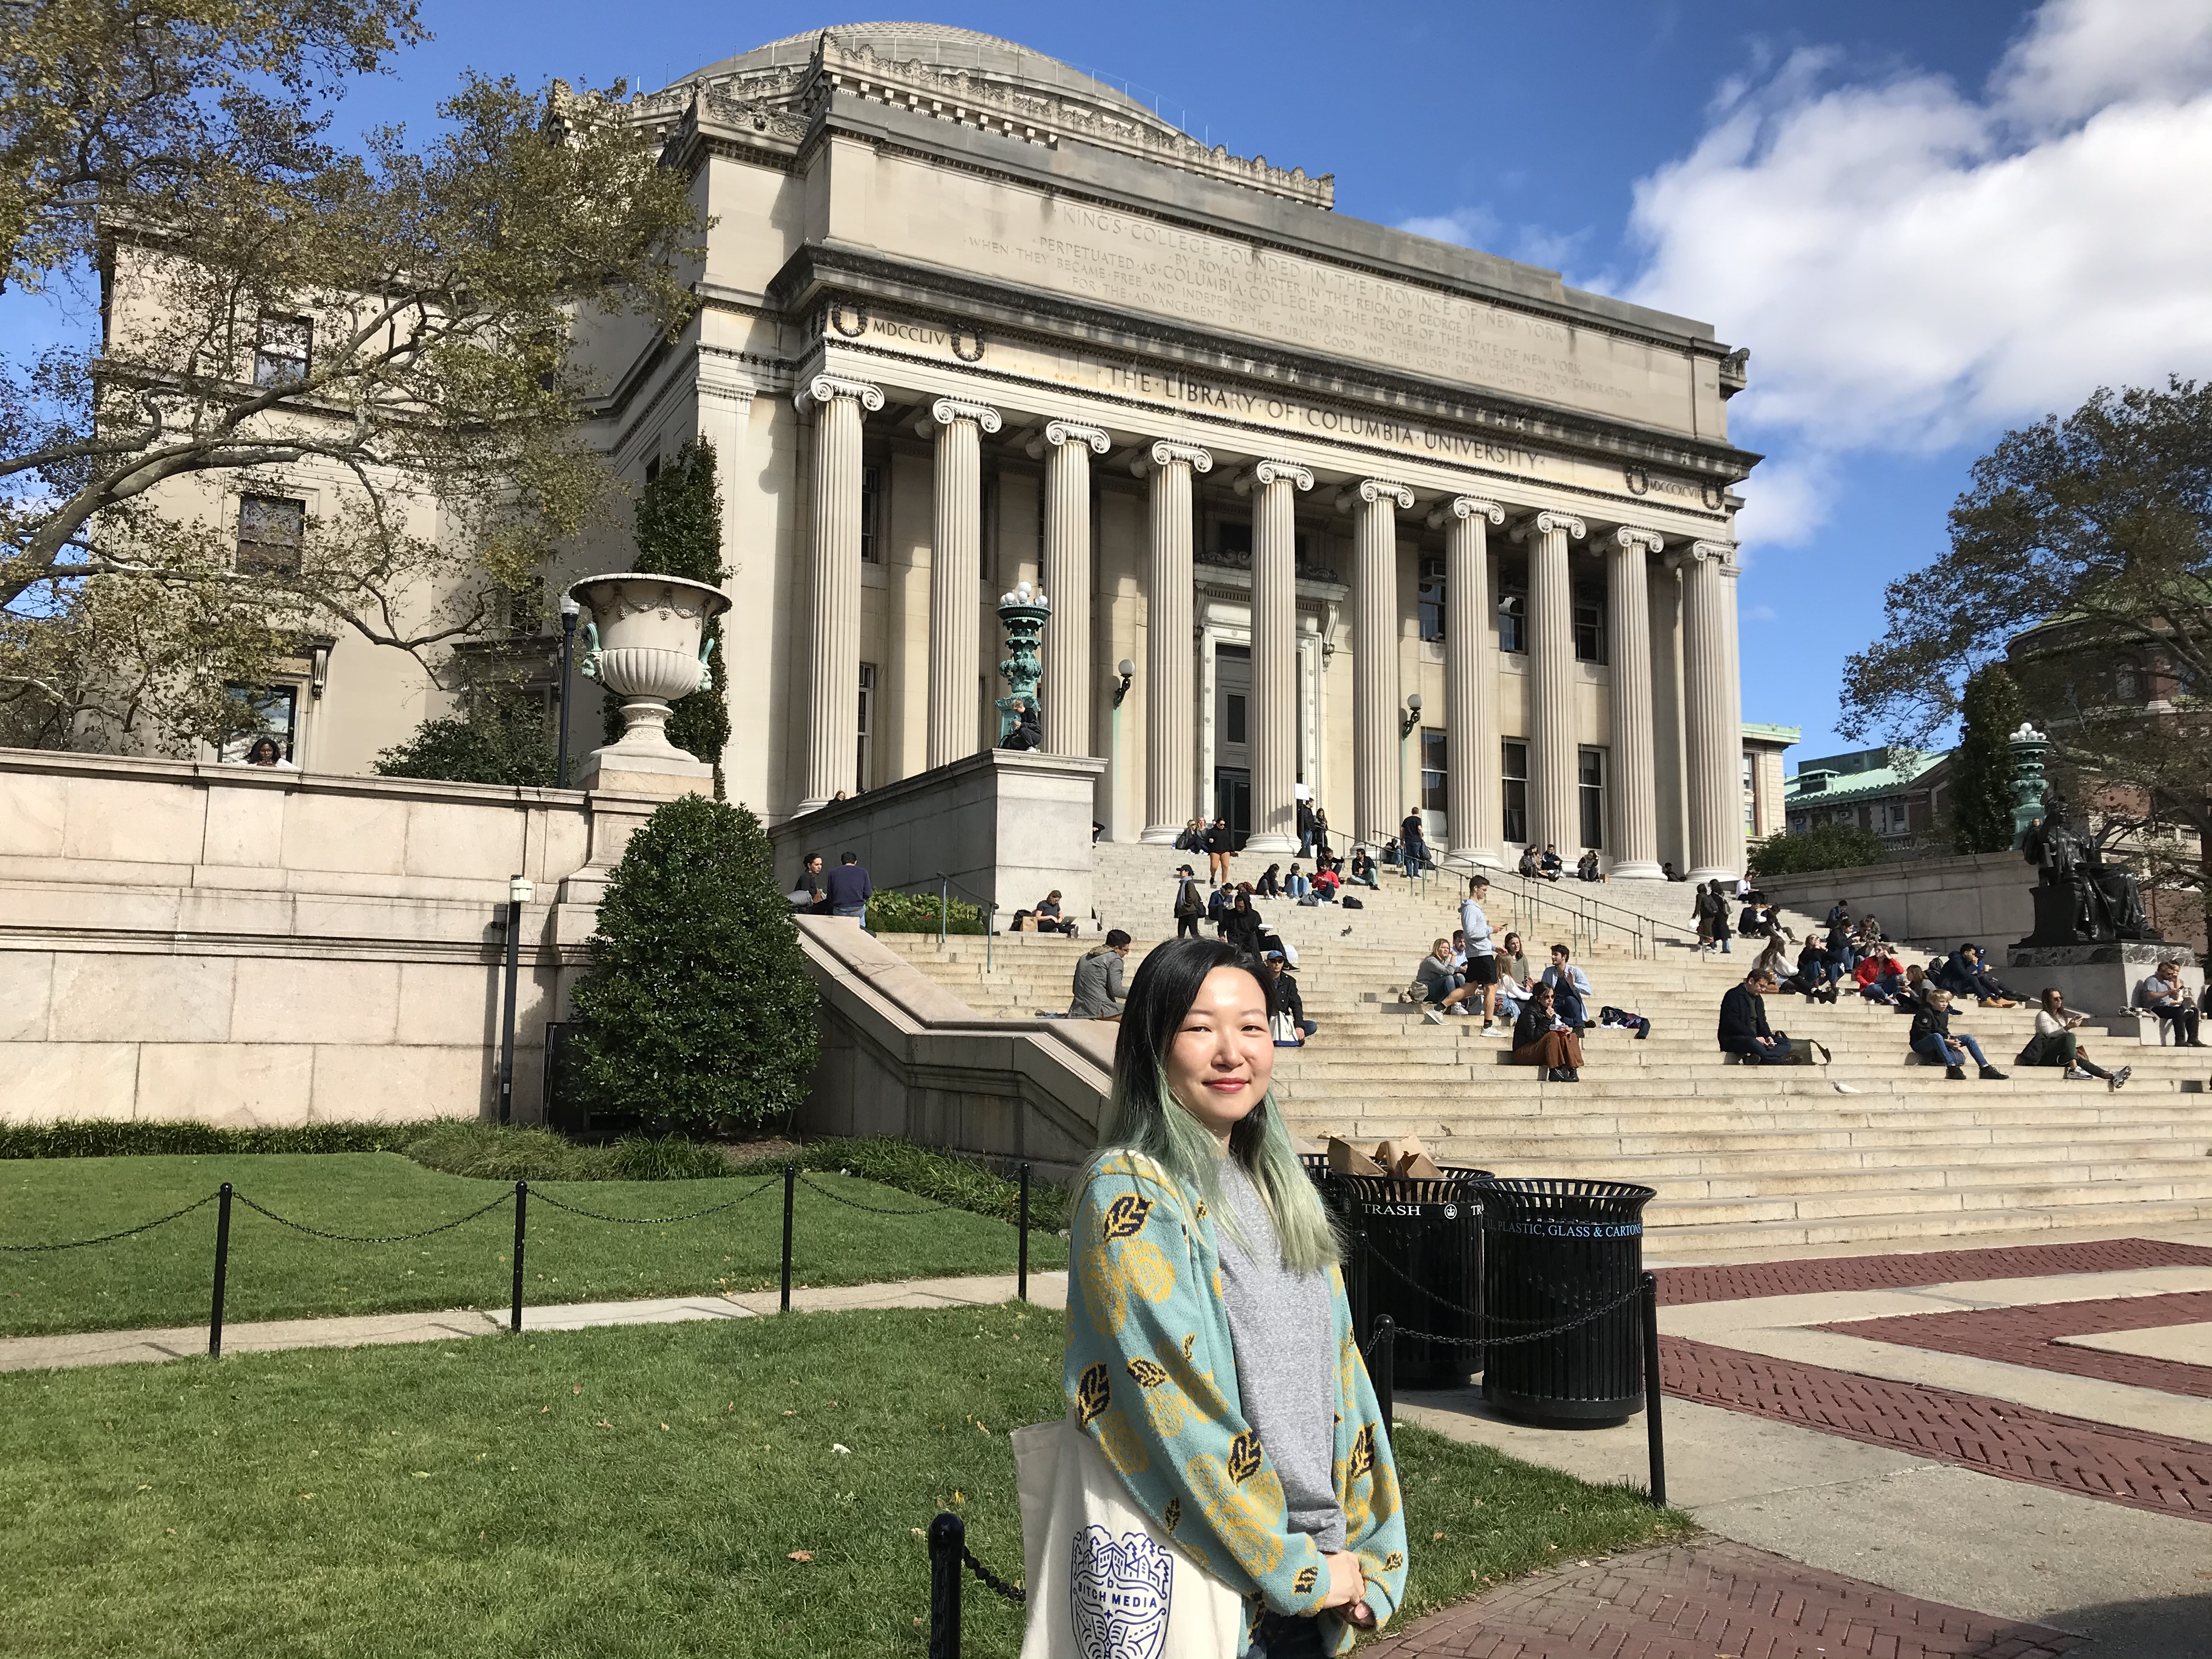 The author is standing in front of a building with columns and marble steps with students sitting on them. It looks like an academic campus.